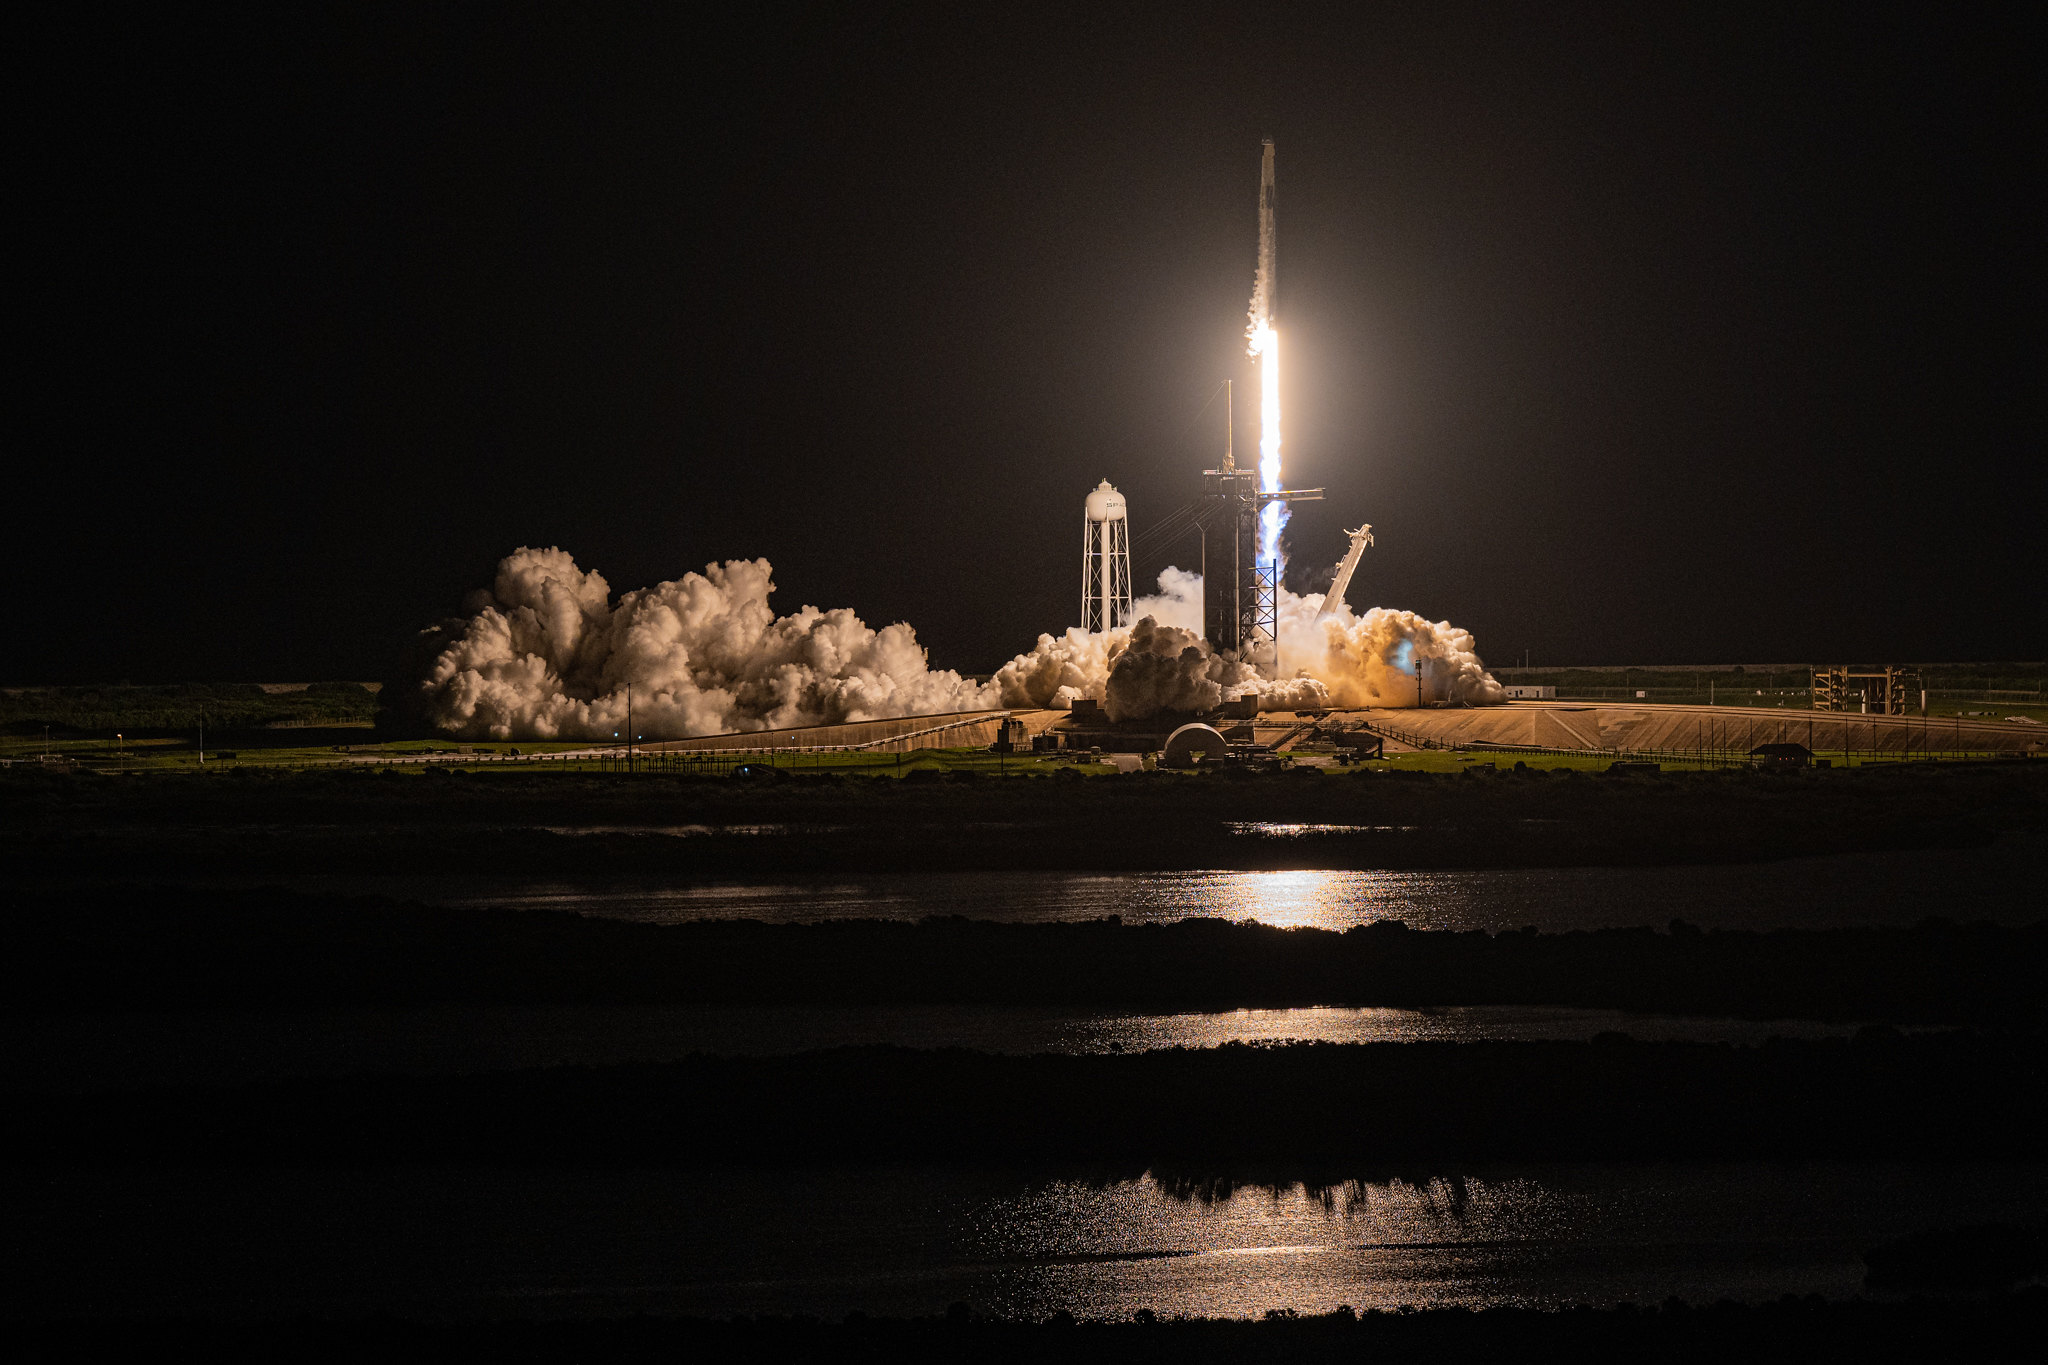 Inspiration4 lifted off successfully on Sept. 15.